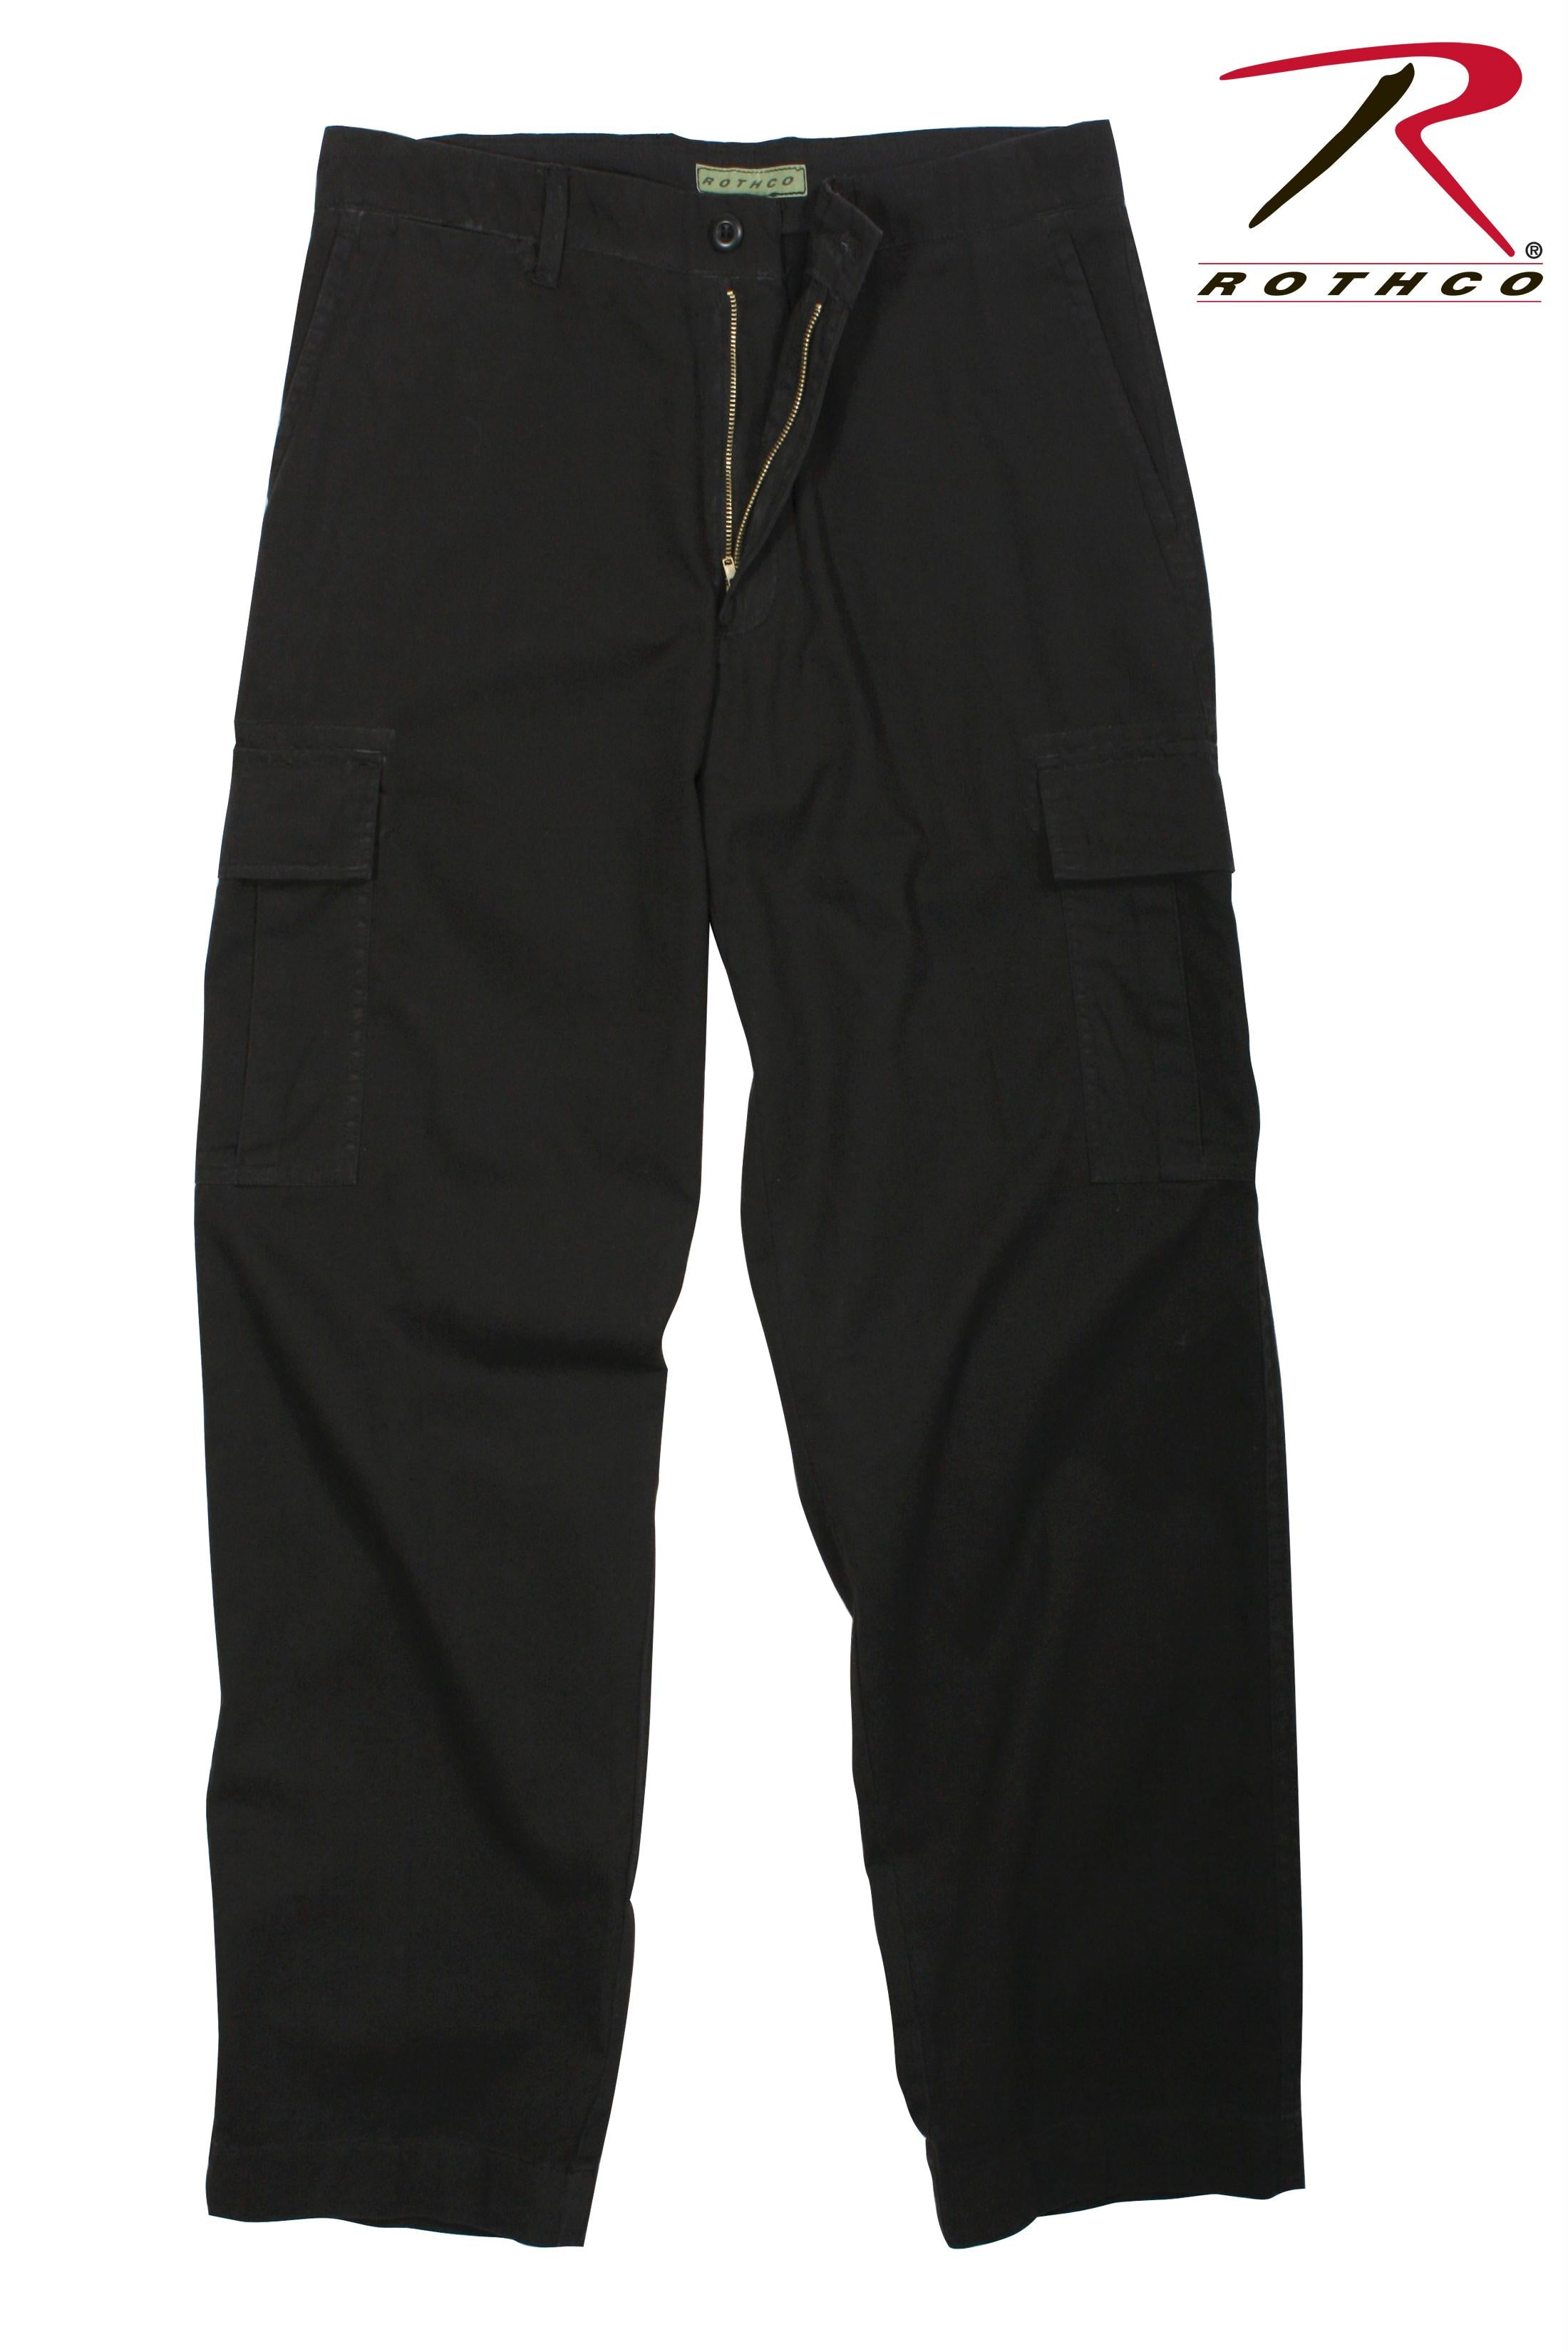 Rothco Vintage 6-Pocket Flat Front Fatigue Pants - Black / 36